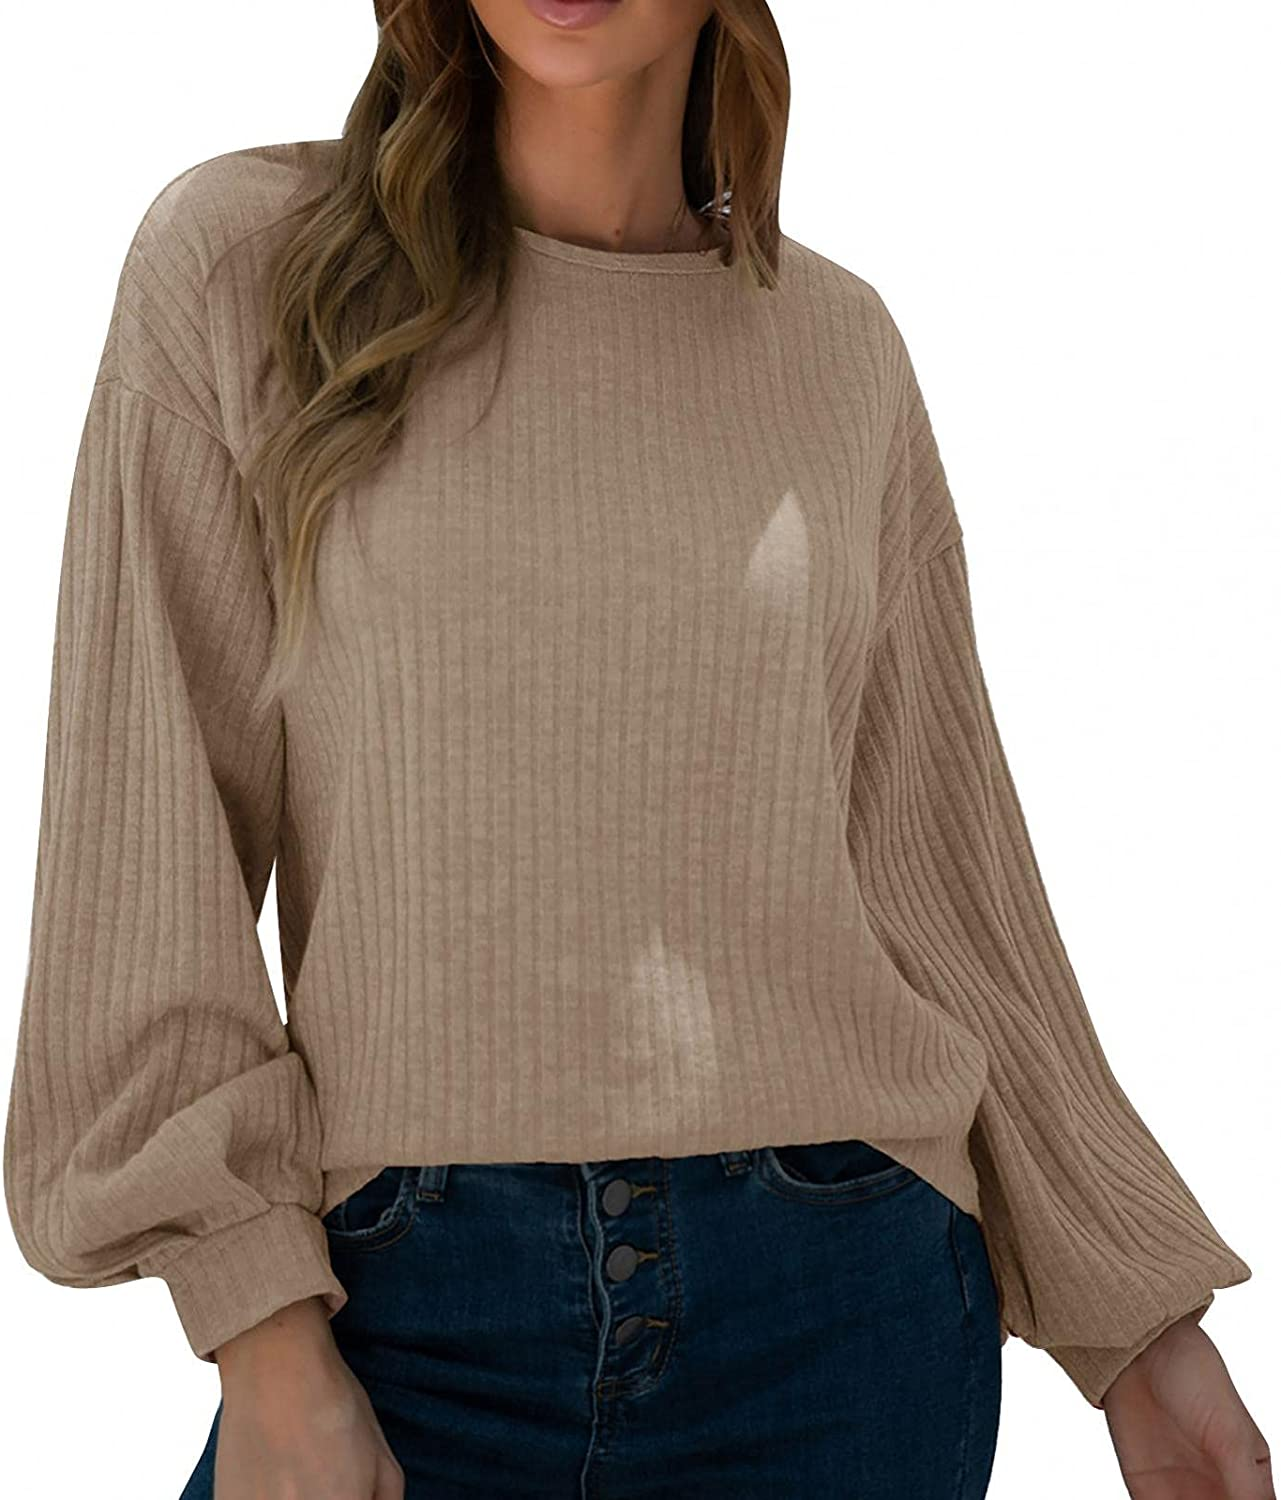 Xinantime Women's Pure Color Sweater Crewneck Long Sleeve Cable Knitted Blouse Causal Lantern Sleeve Sweatshirts